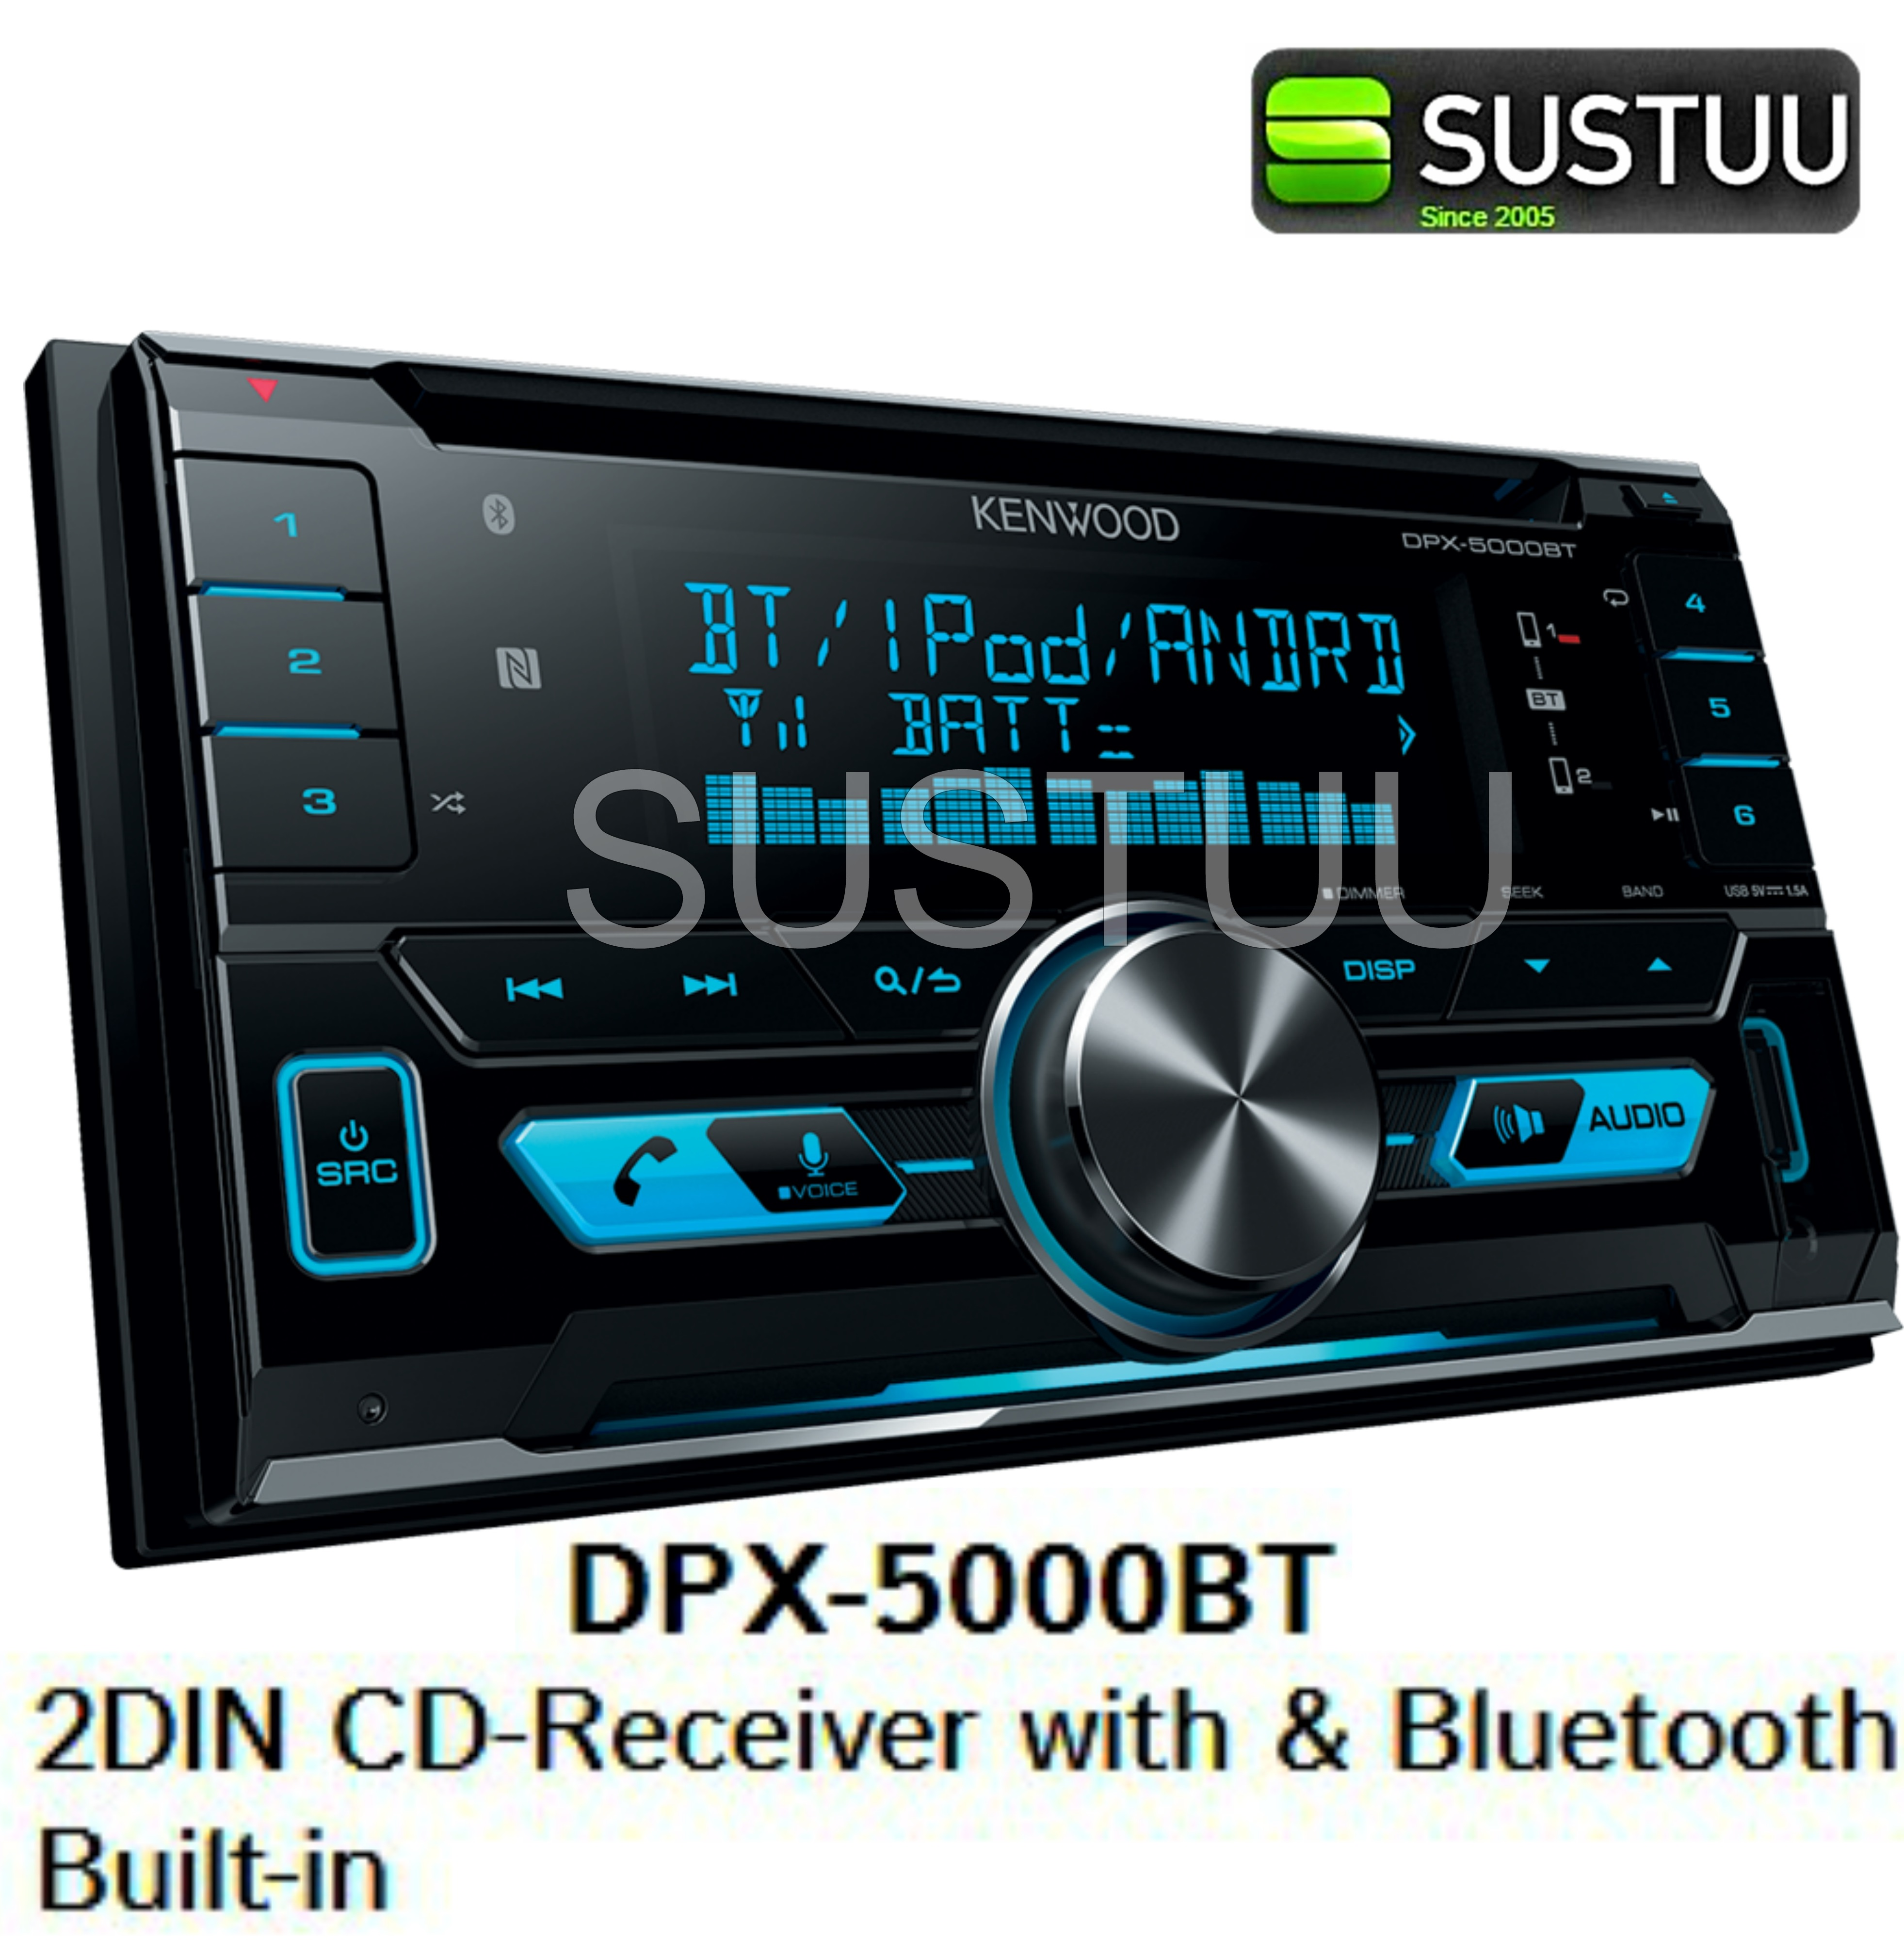 kenwood dpx 5000bt car stereo 2din mp3 cd usb aux bluetooth ipod iphone android sustuu. Black Bedroom Furniture Sets. Home Design Ideas